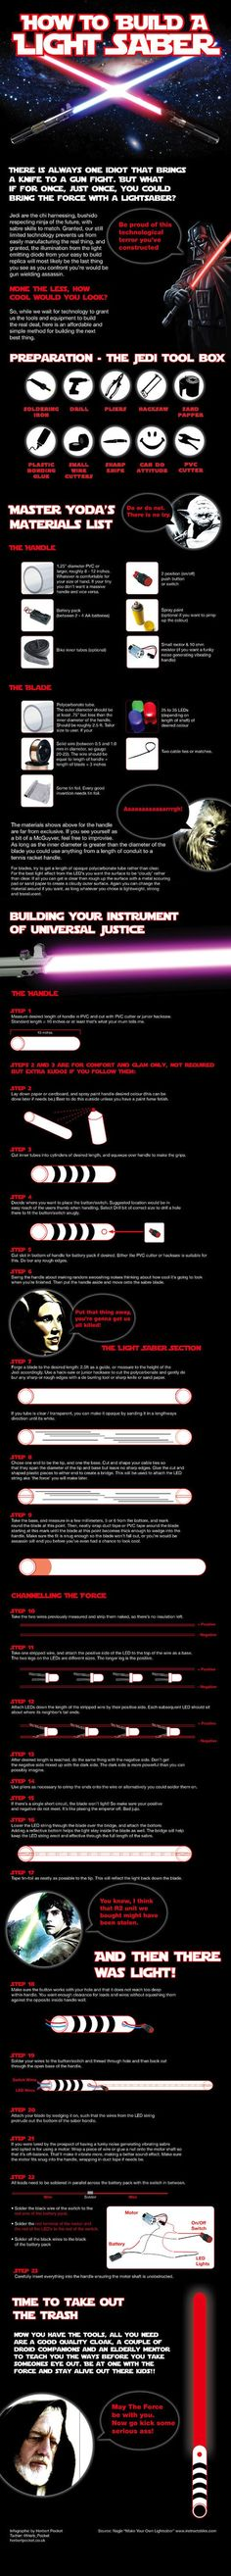 How To Build An LED Lightsaber [Infographic] | Popular Science